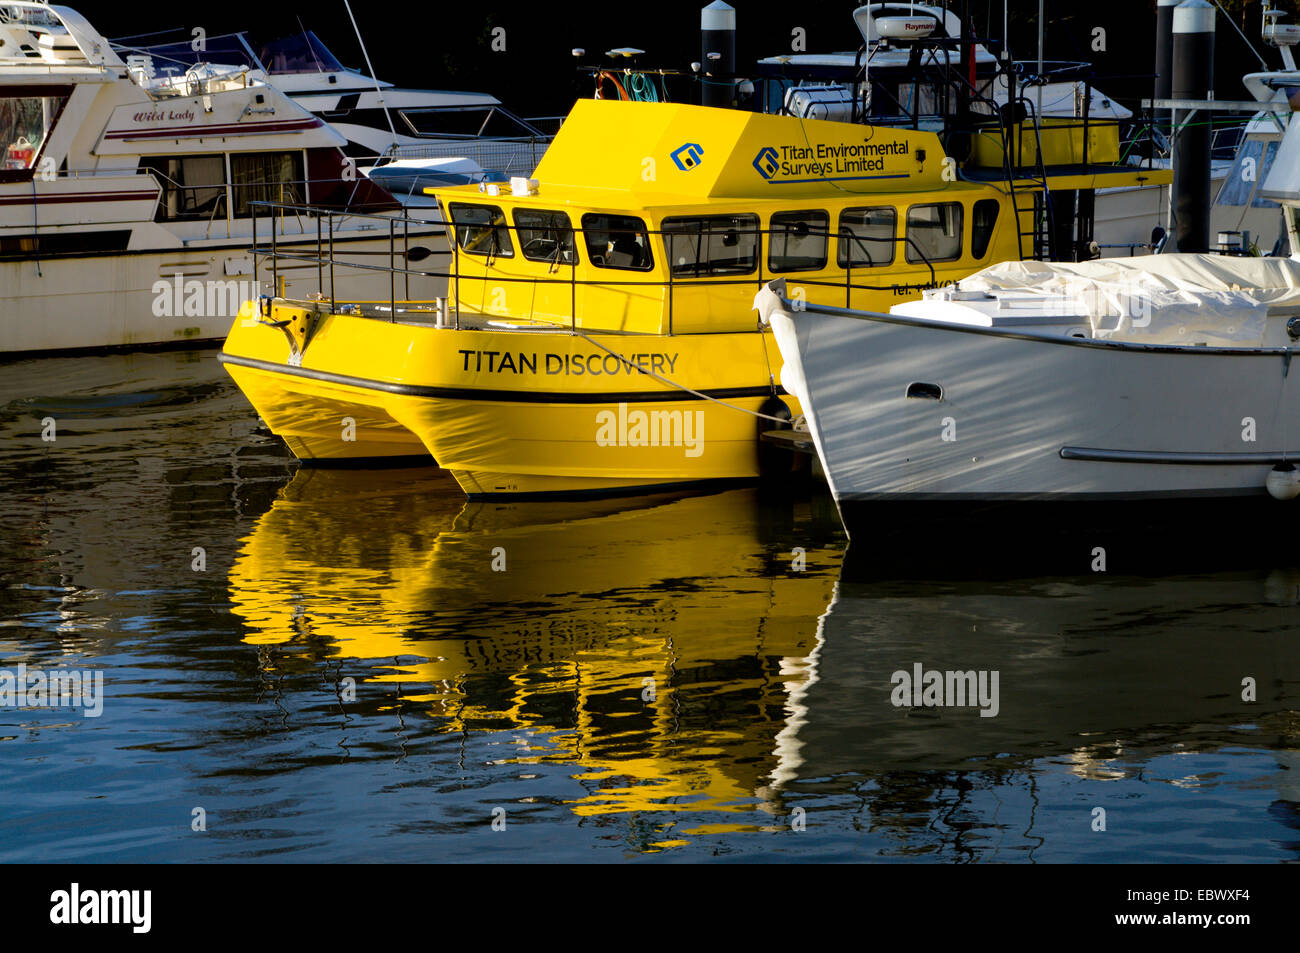 Titan Discovery boat belonging to Titan Environmental Surveys ltd, moored on River Ely, Cardiff Bay, South Wales, - Stock Image